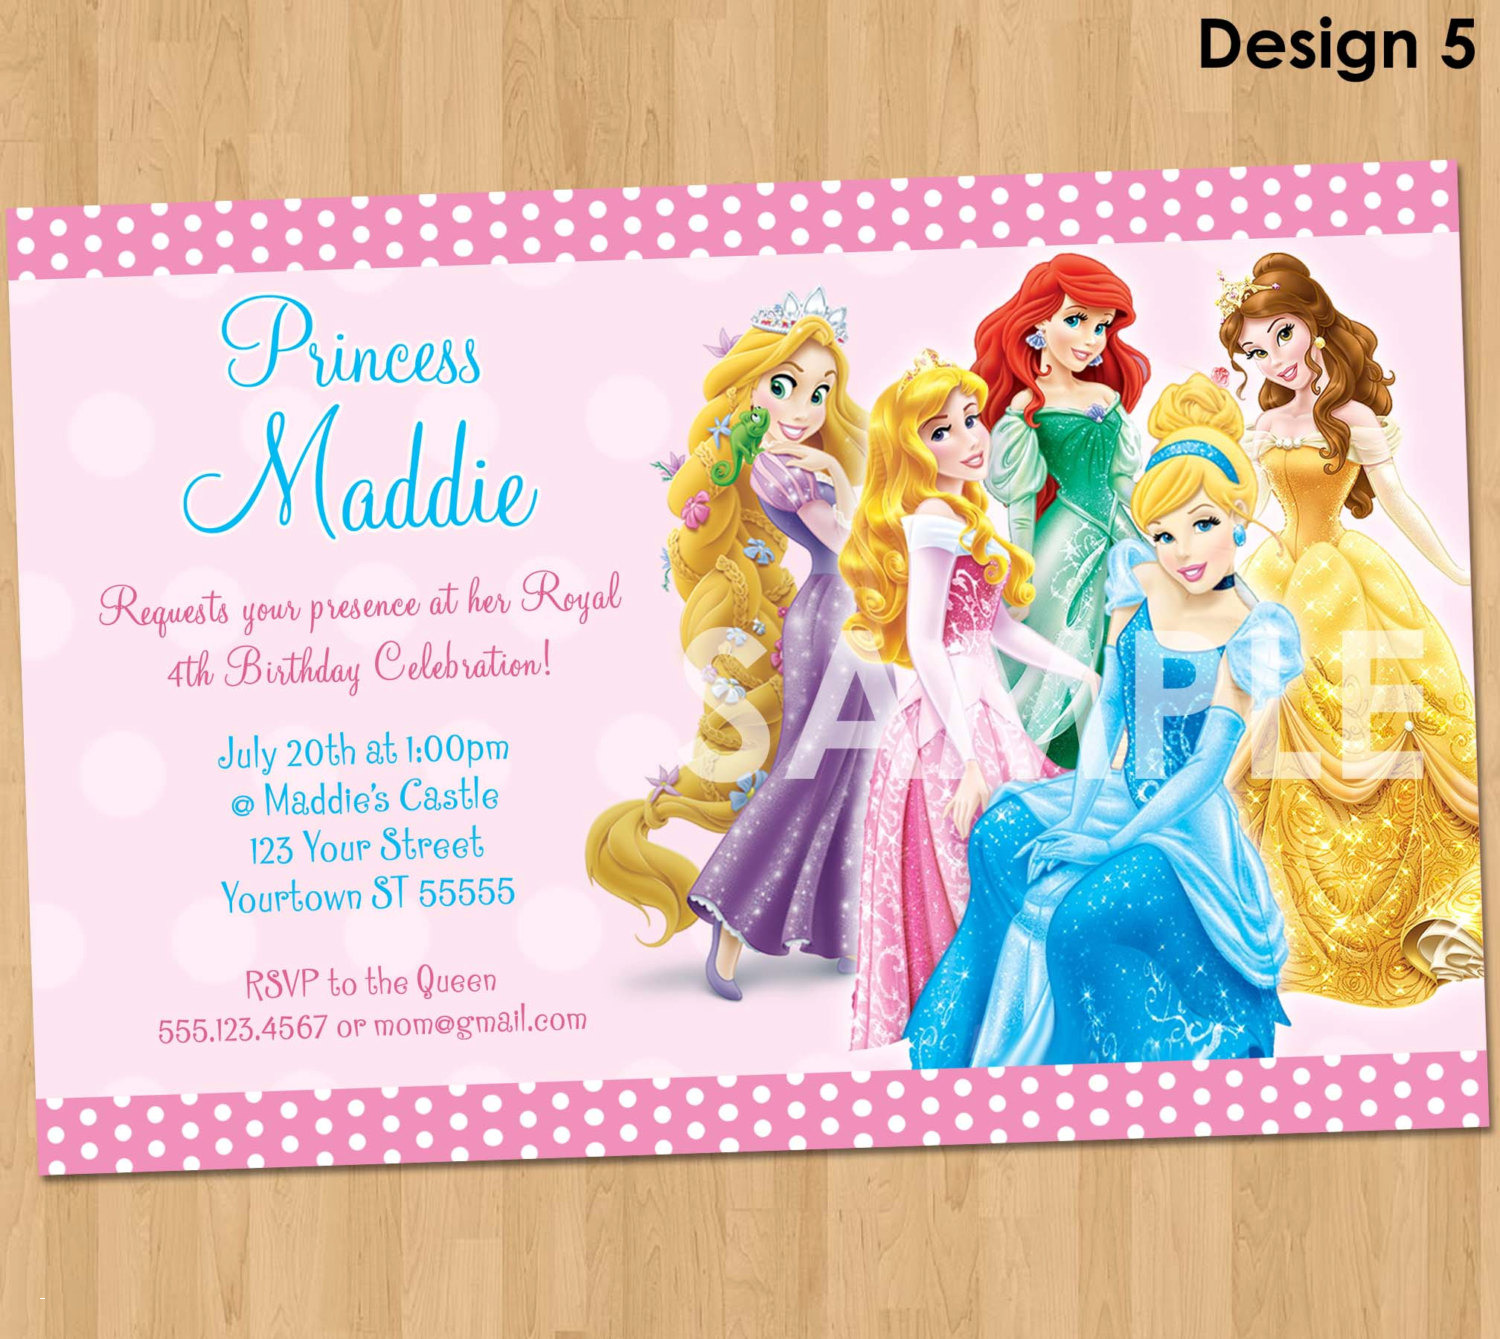 disney princess birthday card templates ; princess-birthday-card-template-luxury-party-invitations-with-all-disney-princesses-including-frozen-of-princess-birthday-card-template